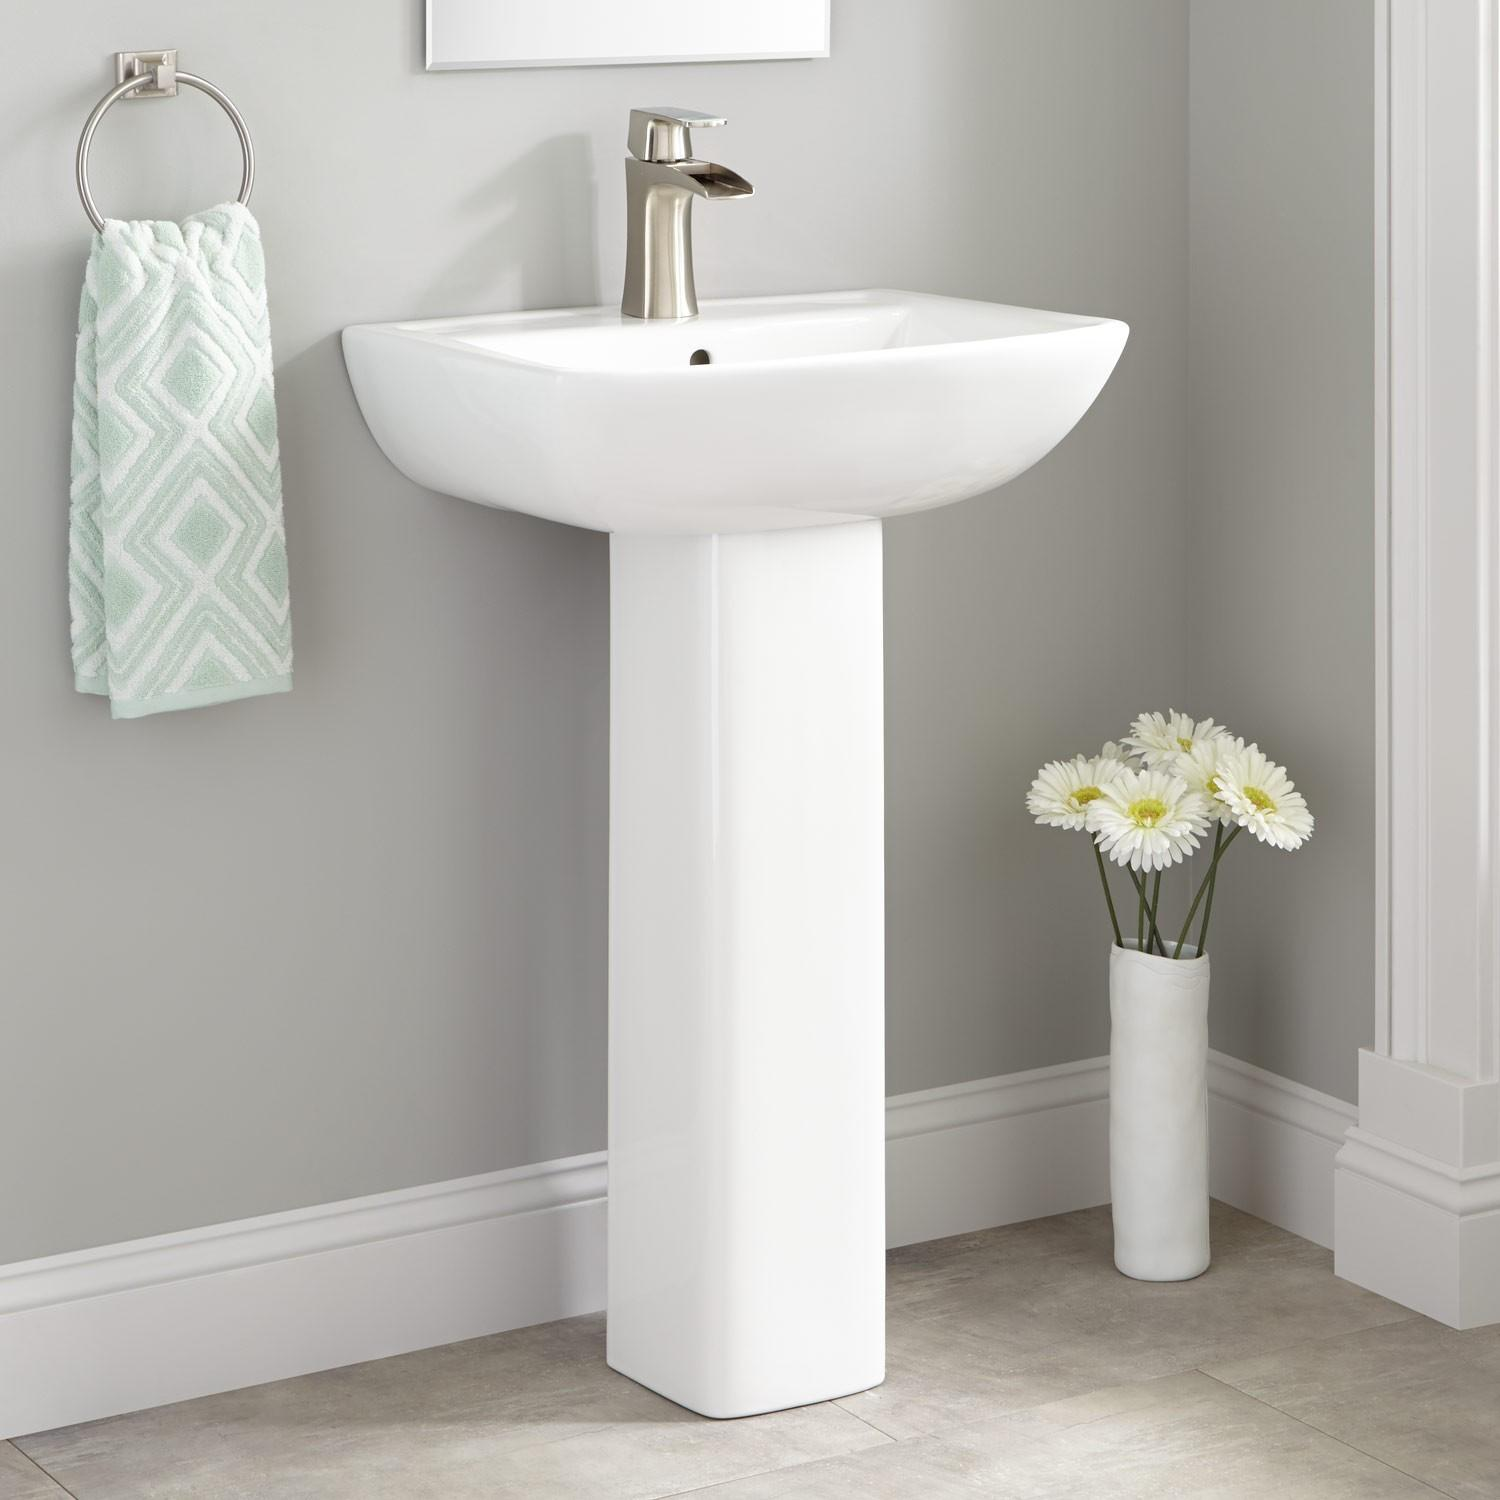 Kerr Porcelain Pedestal Sink Bathroom Sinks